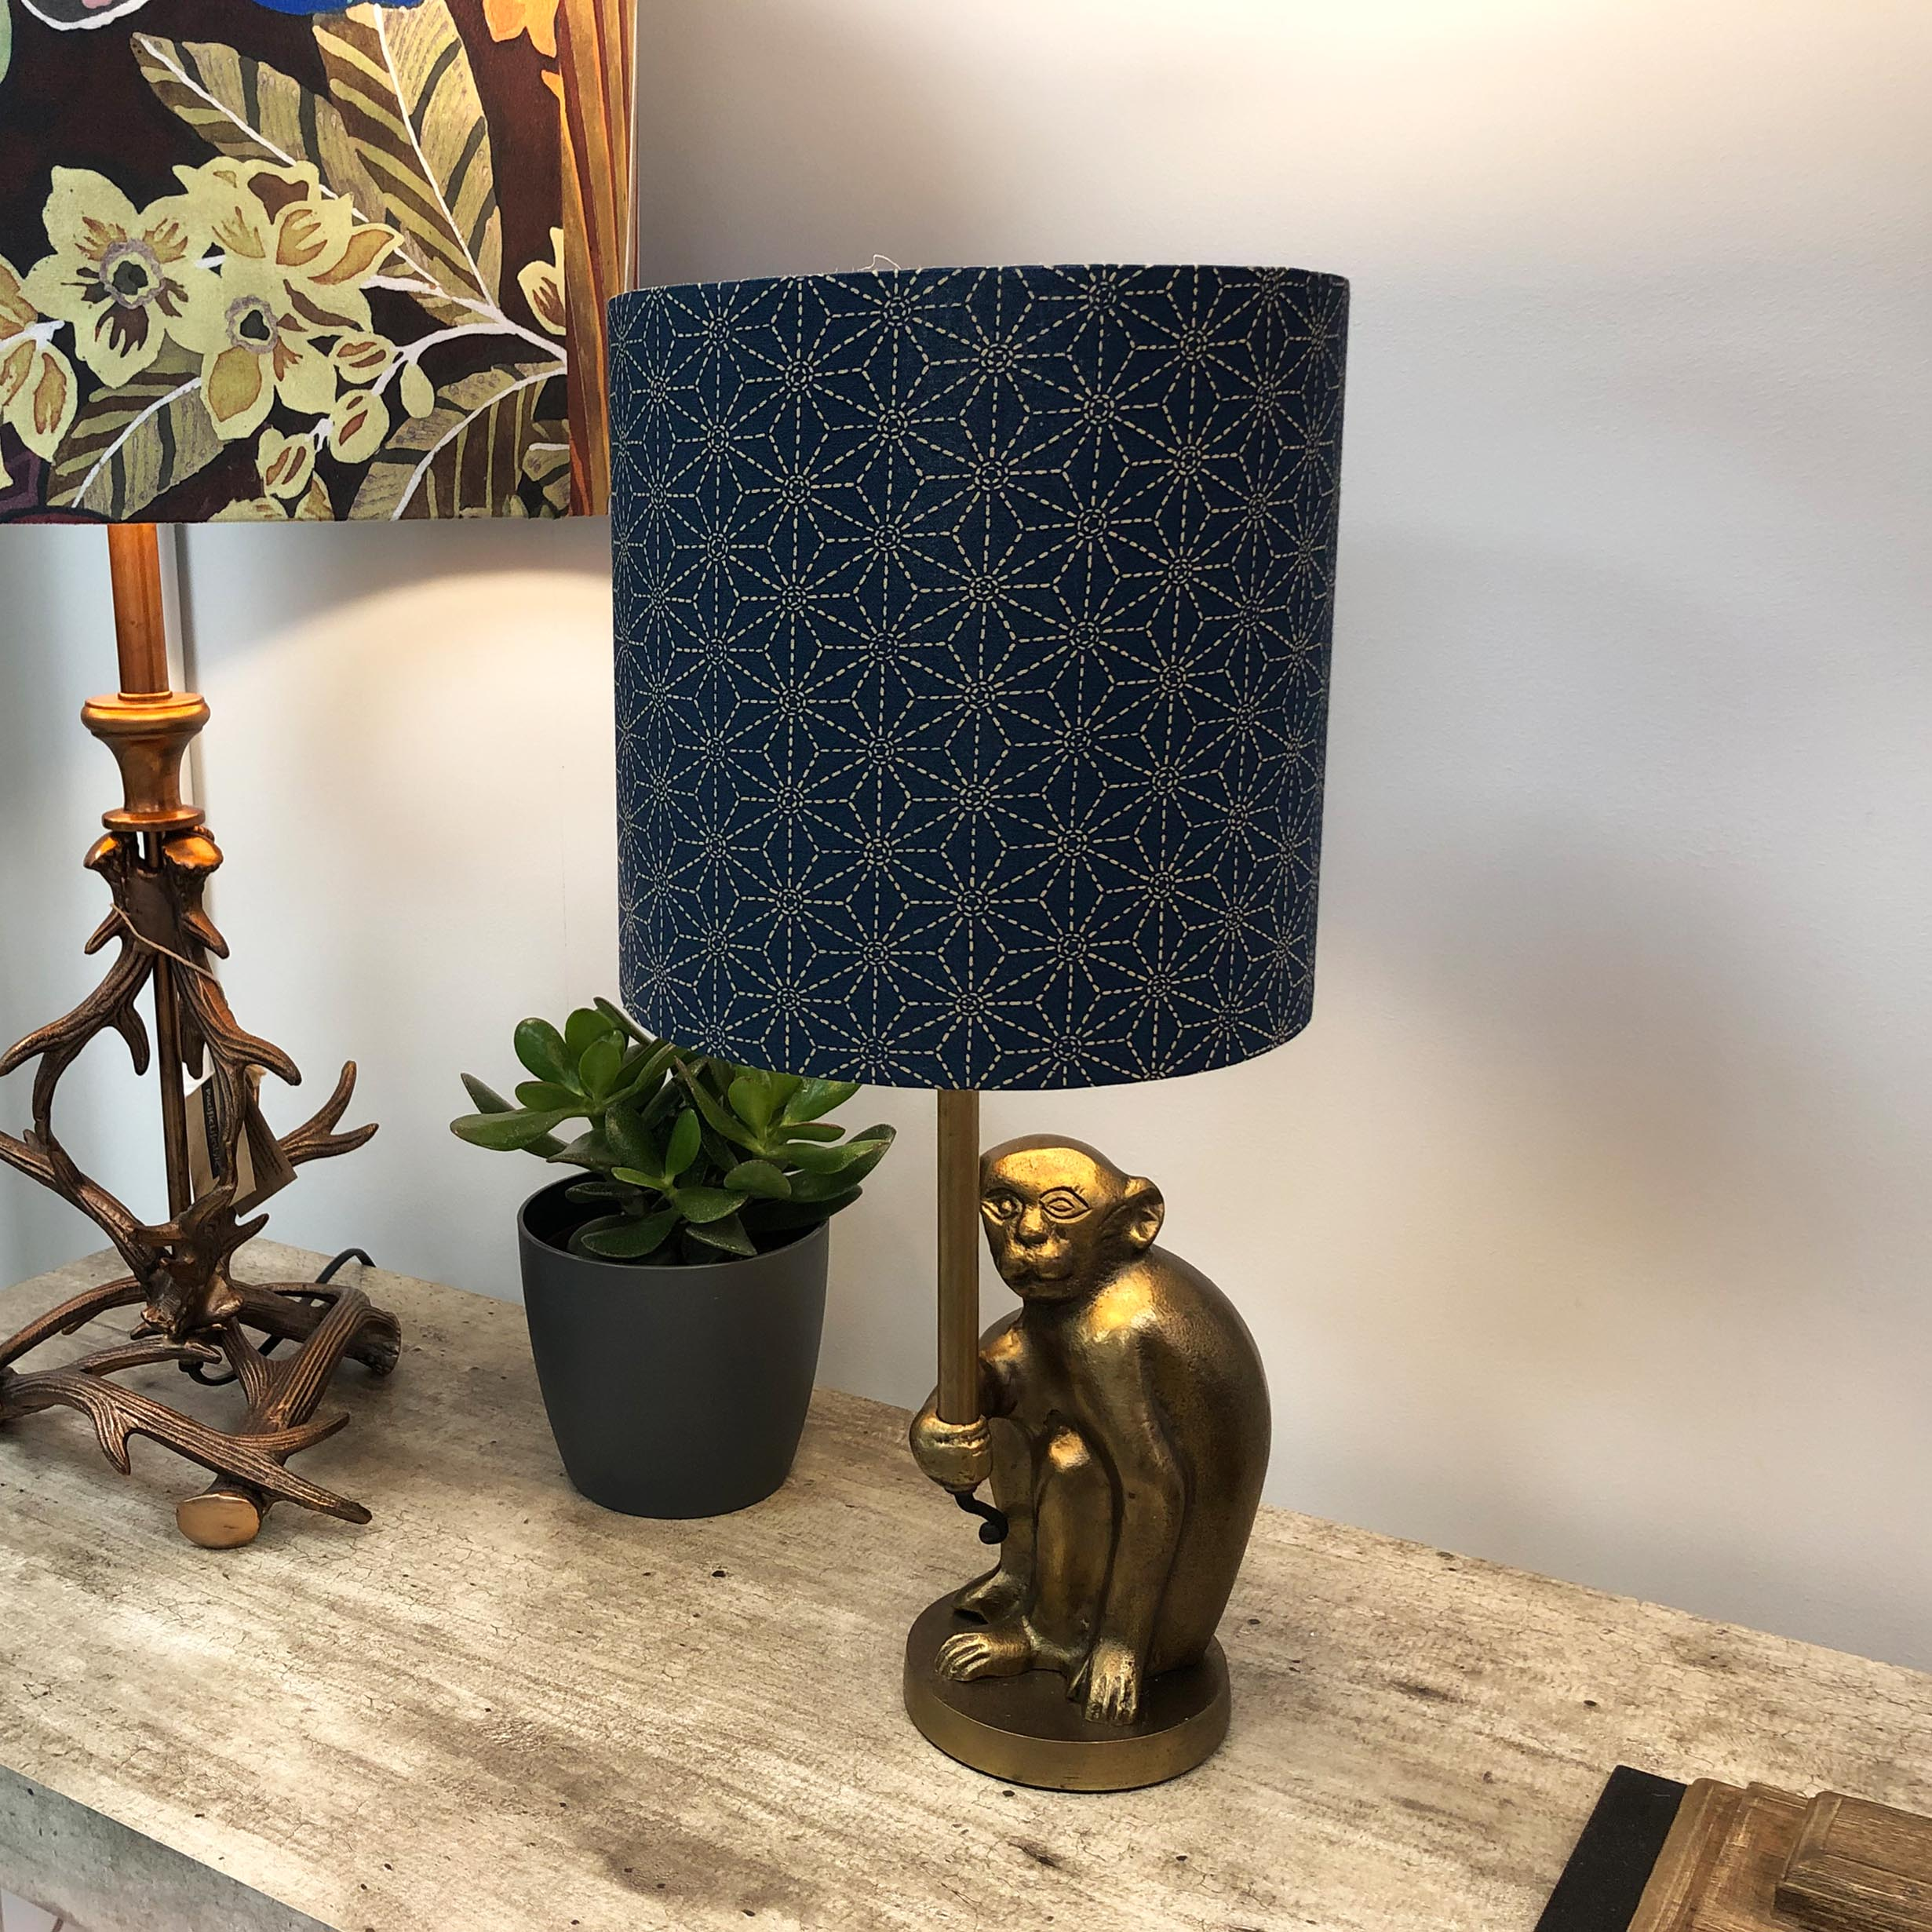 Table Lamp in quirky monkey design